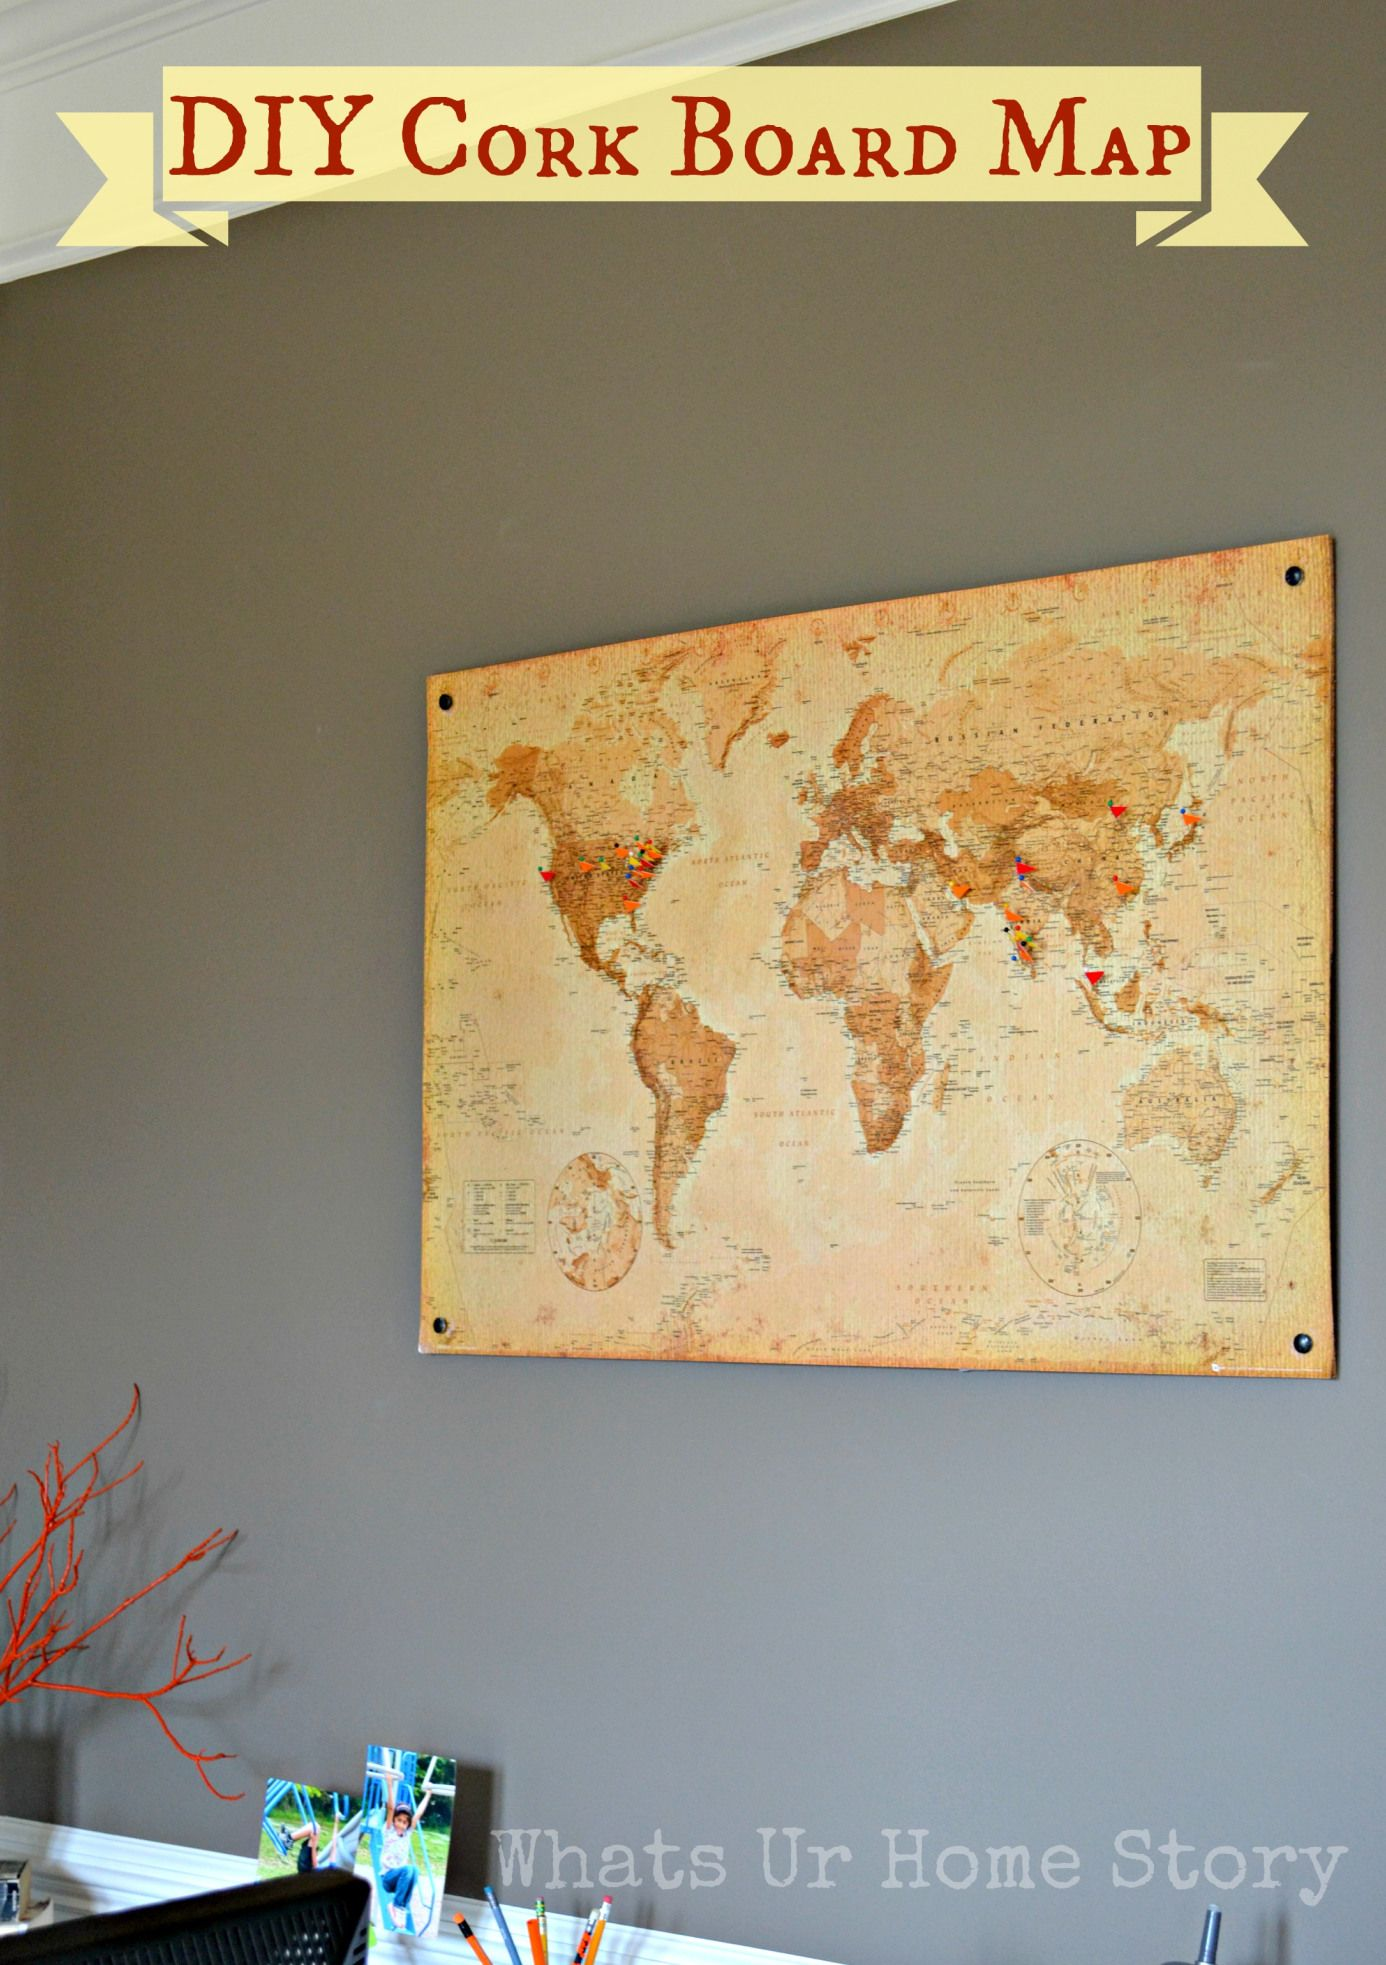 Diy cork board map diy cork board cork tiles and cork boards diy cork board map whats ur home story gumiabroncs Image collections